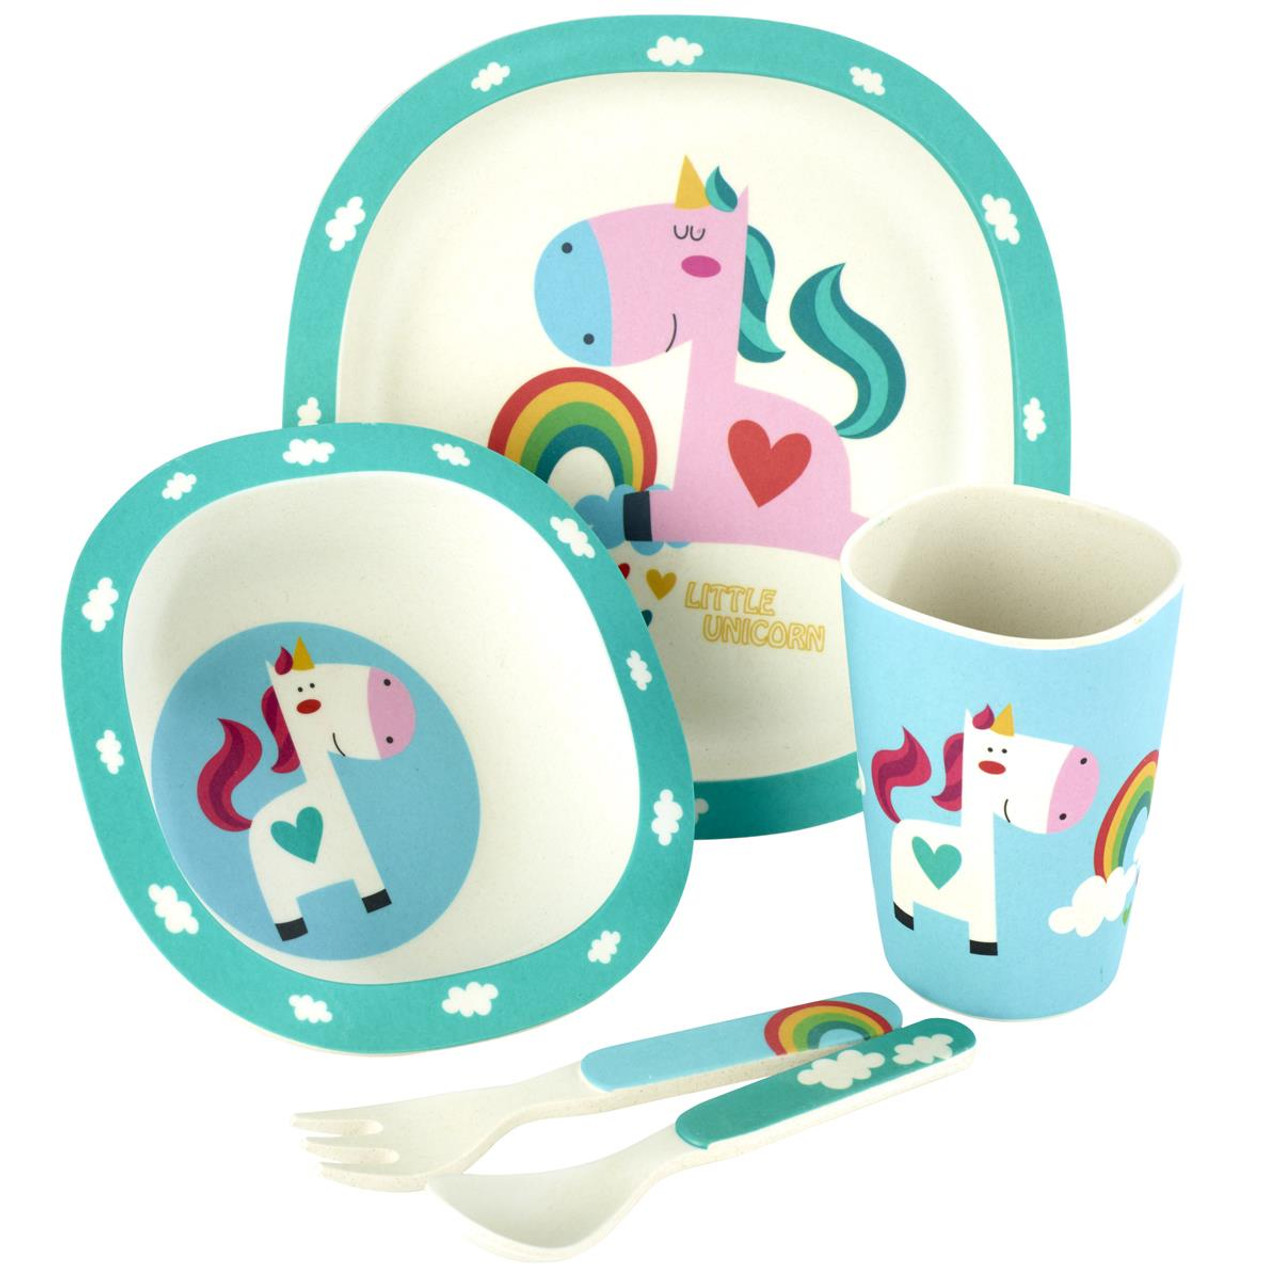 Arthur Price Unicorn Bamboo Set